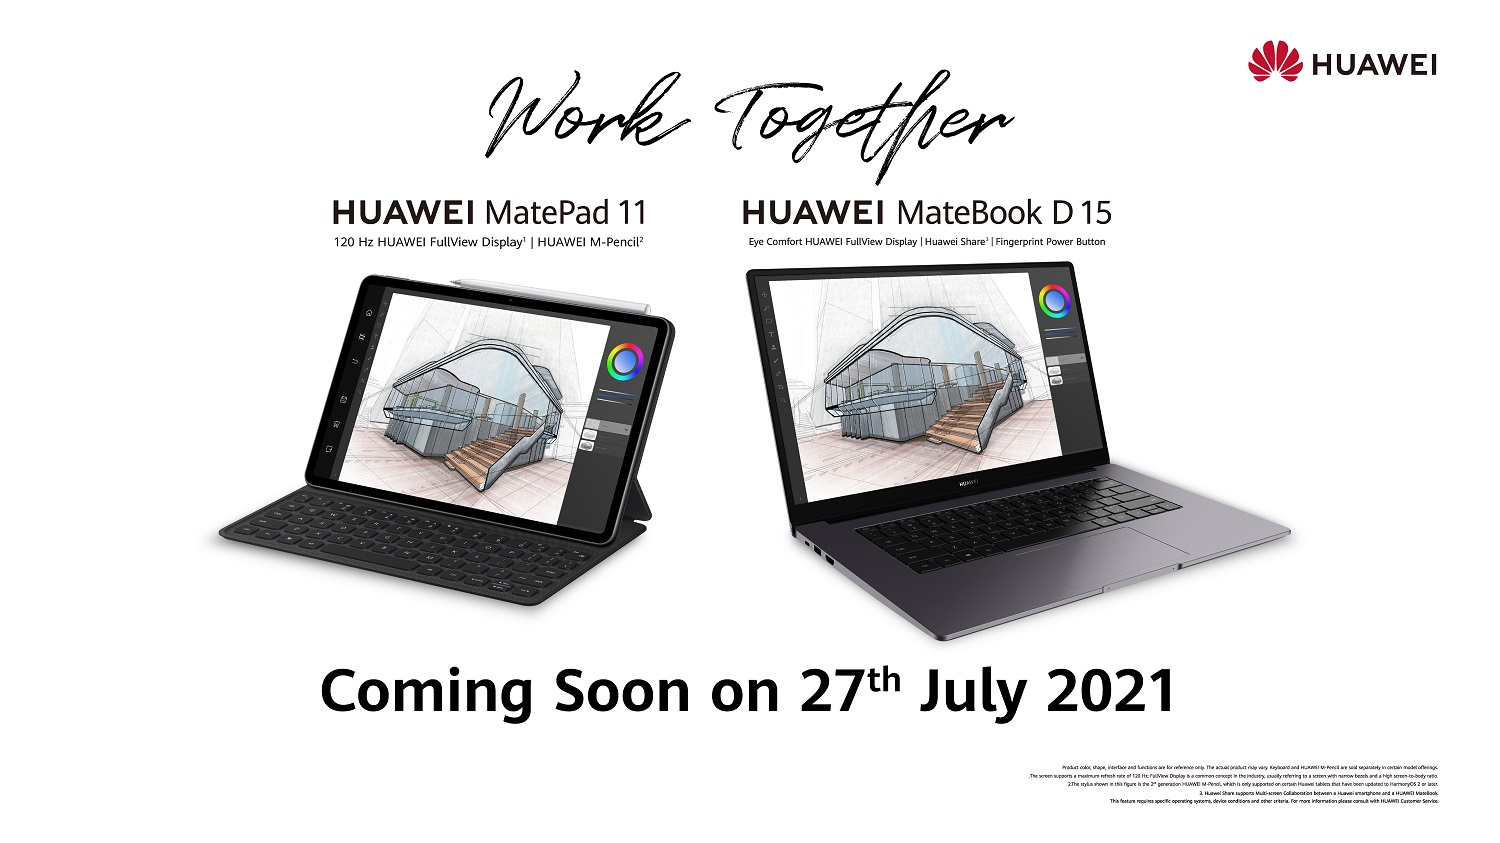 HUAWEI Launches New Productivity Companions with The MatePad 11 and MateBook Variants